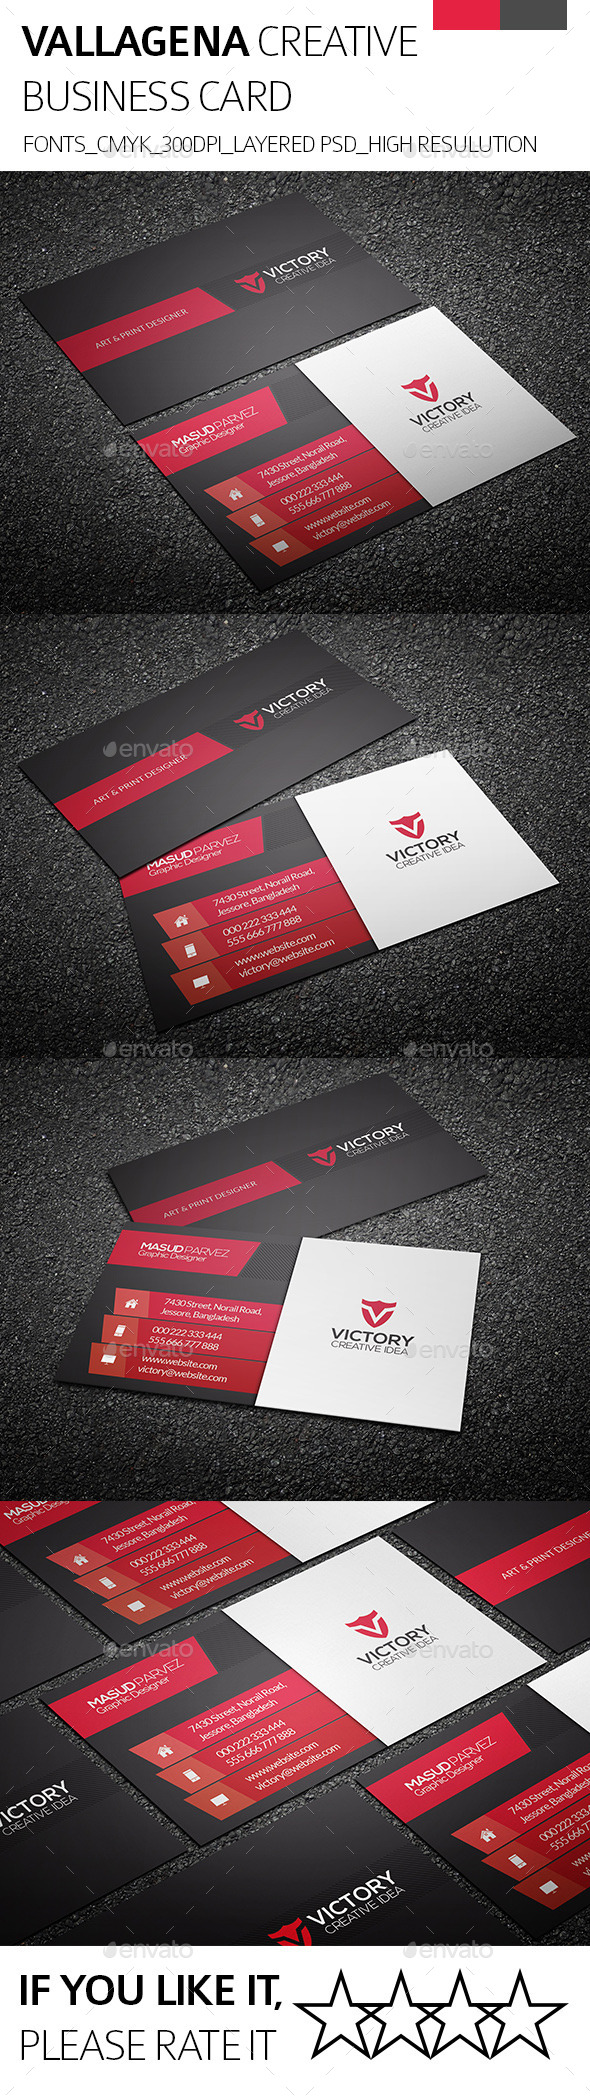 Vallagena & Creative Business Card - Corporate Business Cards